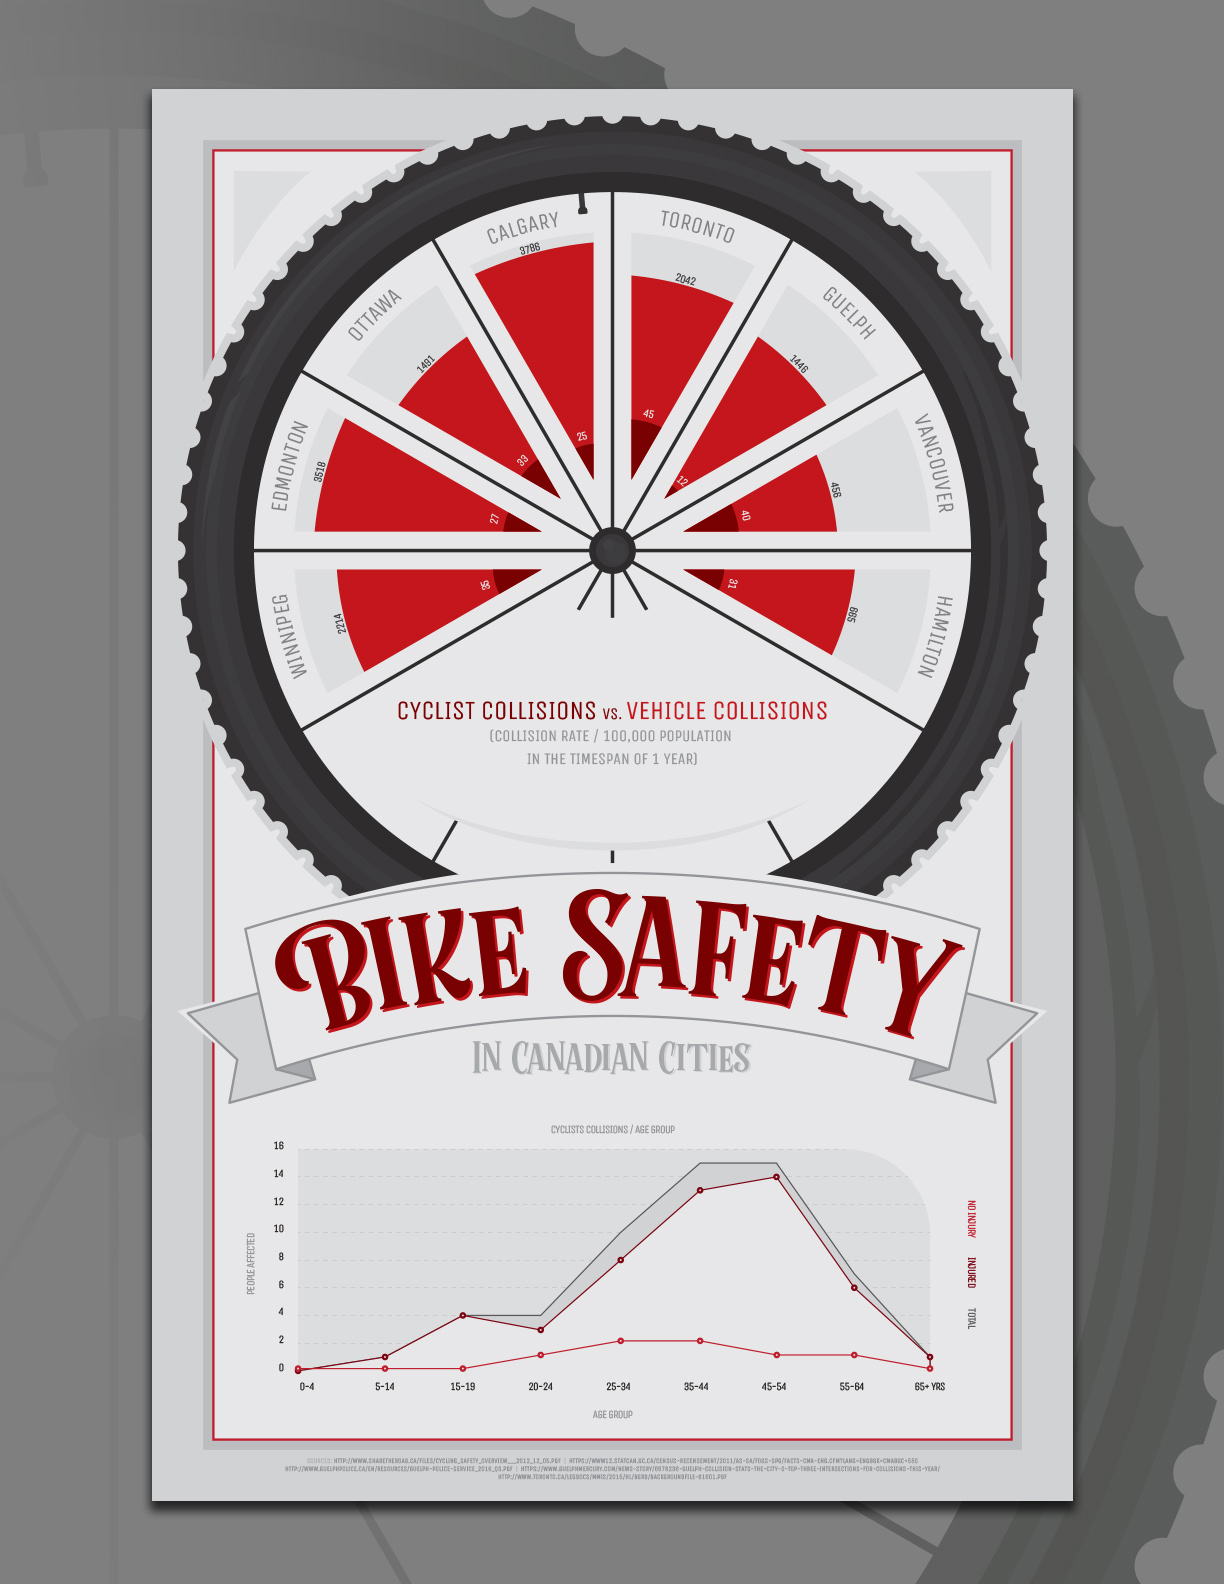 Bike safety infographic comparing guelph to canadian cities